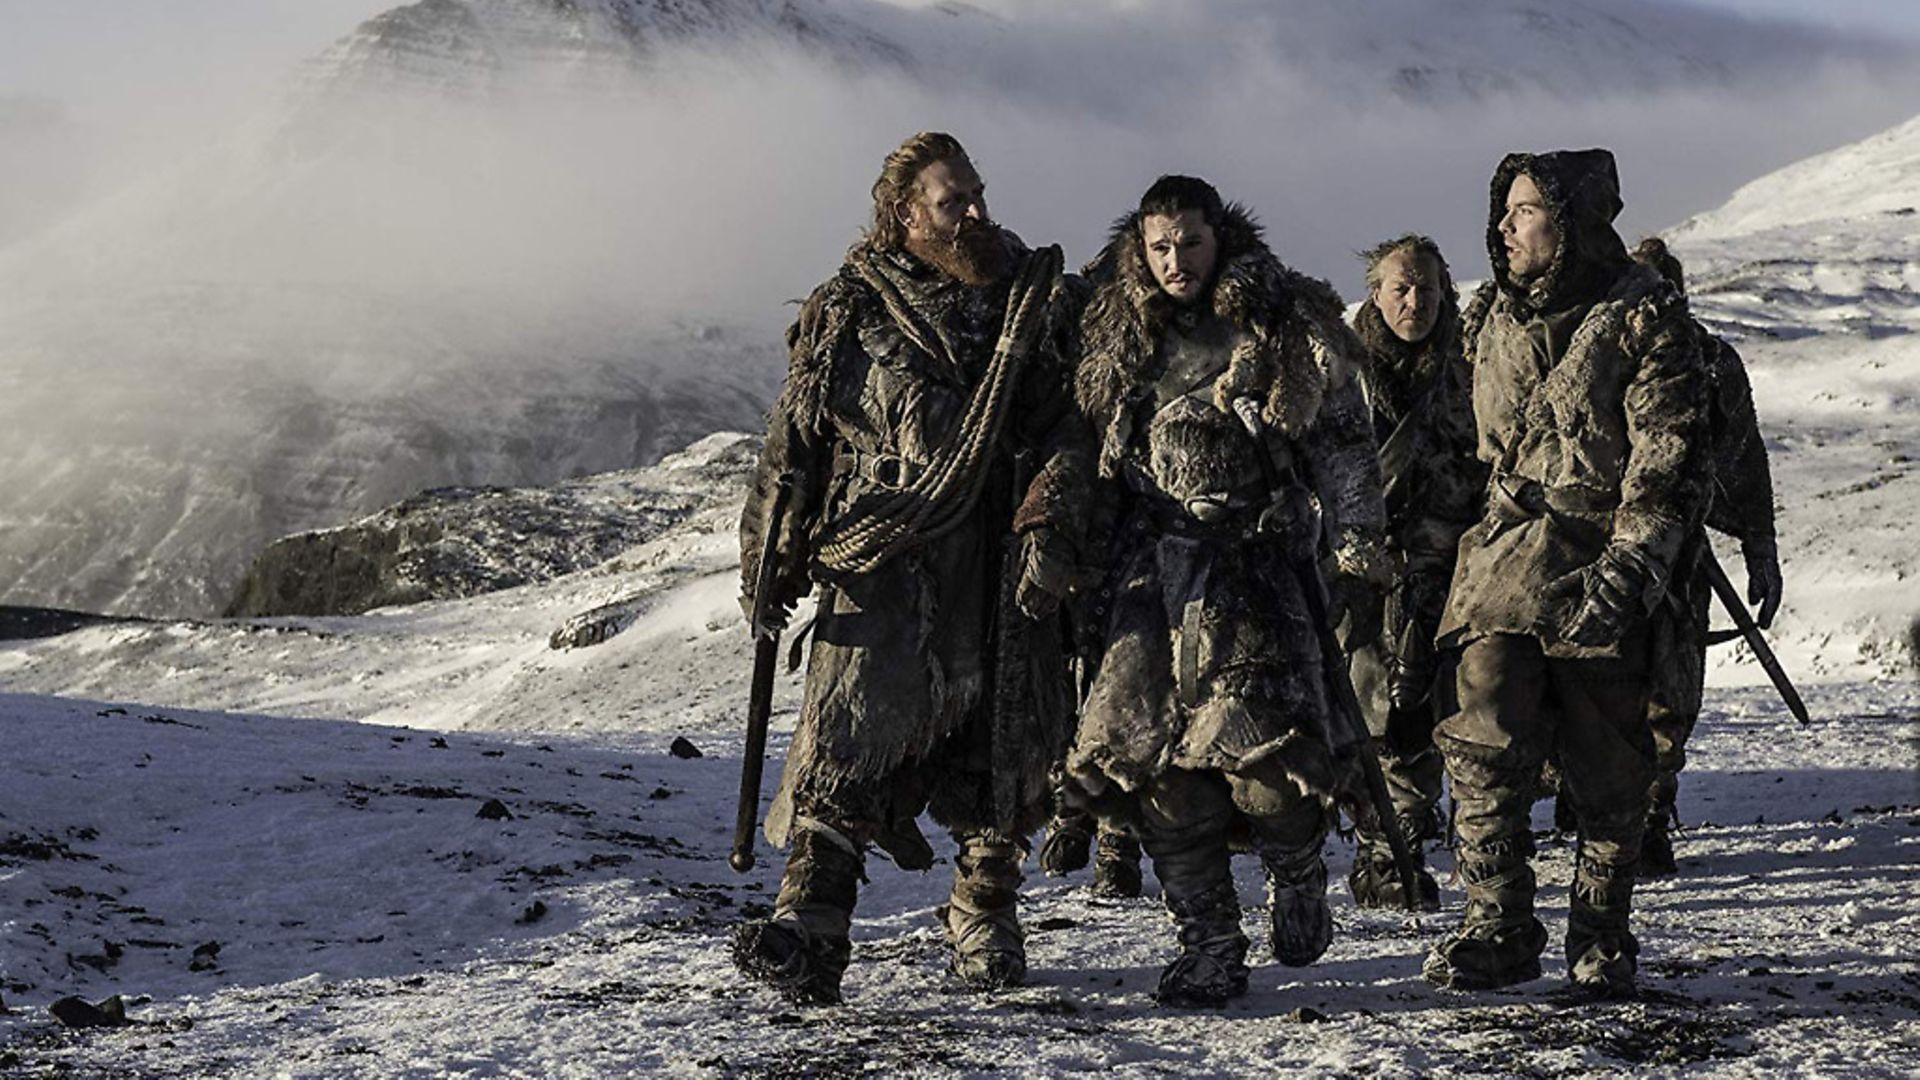 Game of Thrones has come to an end. Picture: HBO/IMDB - Credit: HBO/IMDB